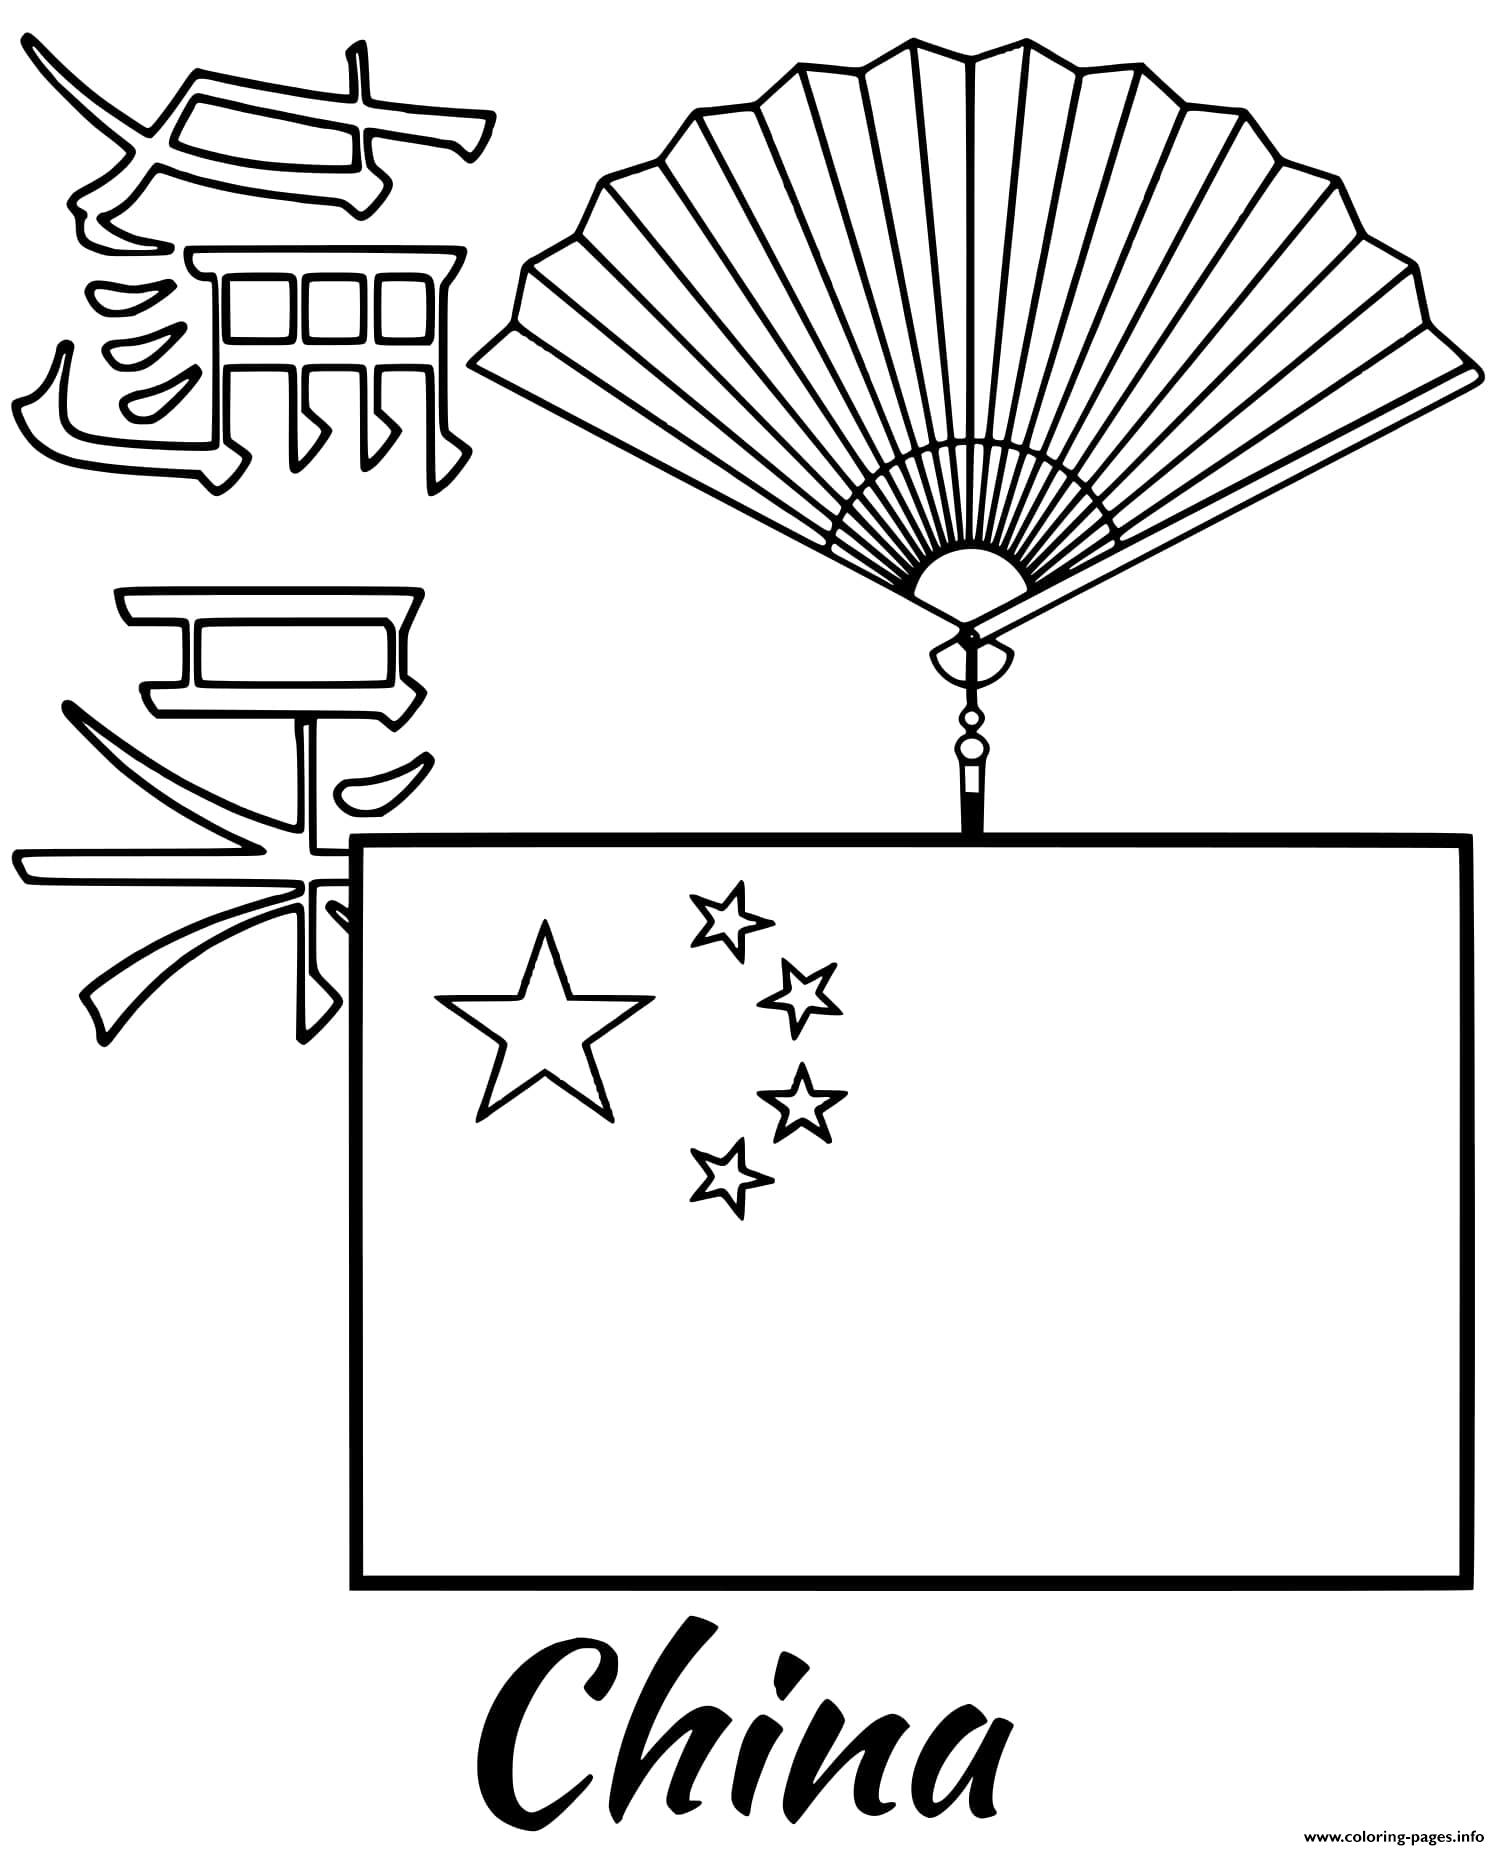 chinese flag coloring page chinese flag coloring page printable that are simplicity page coloring chinese flag